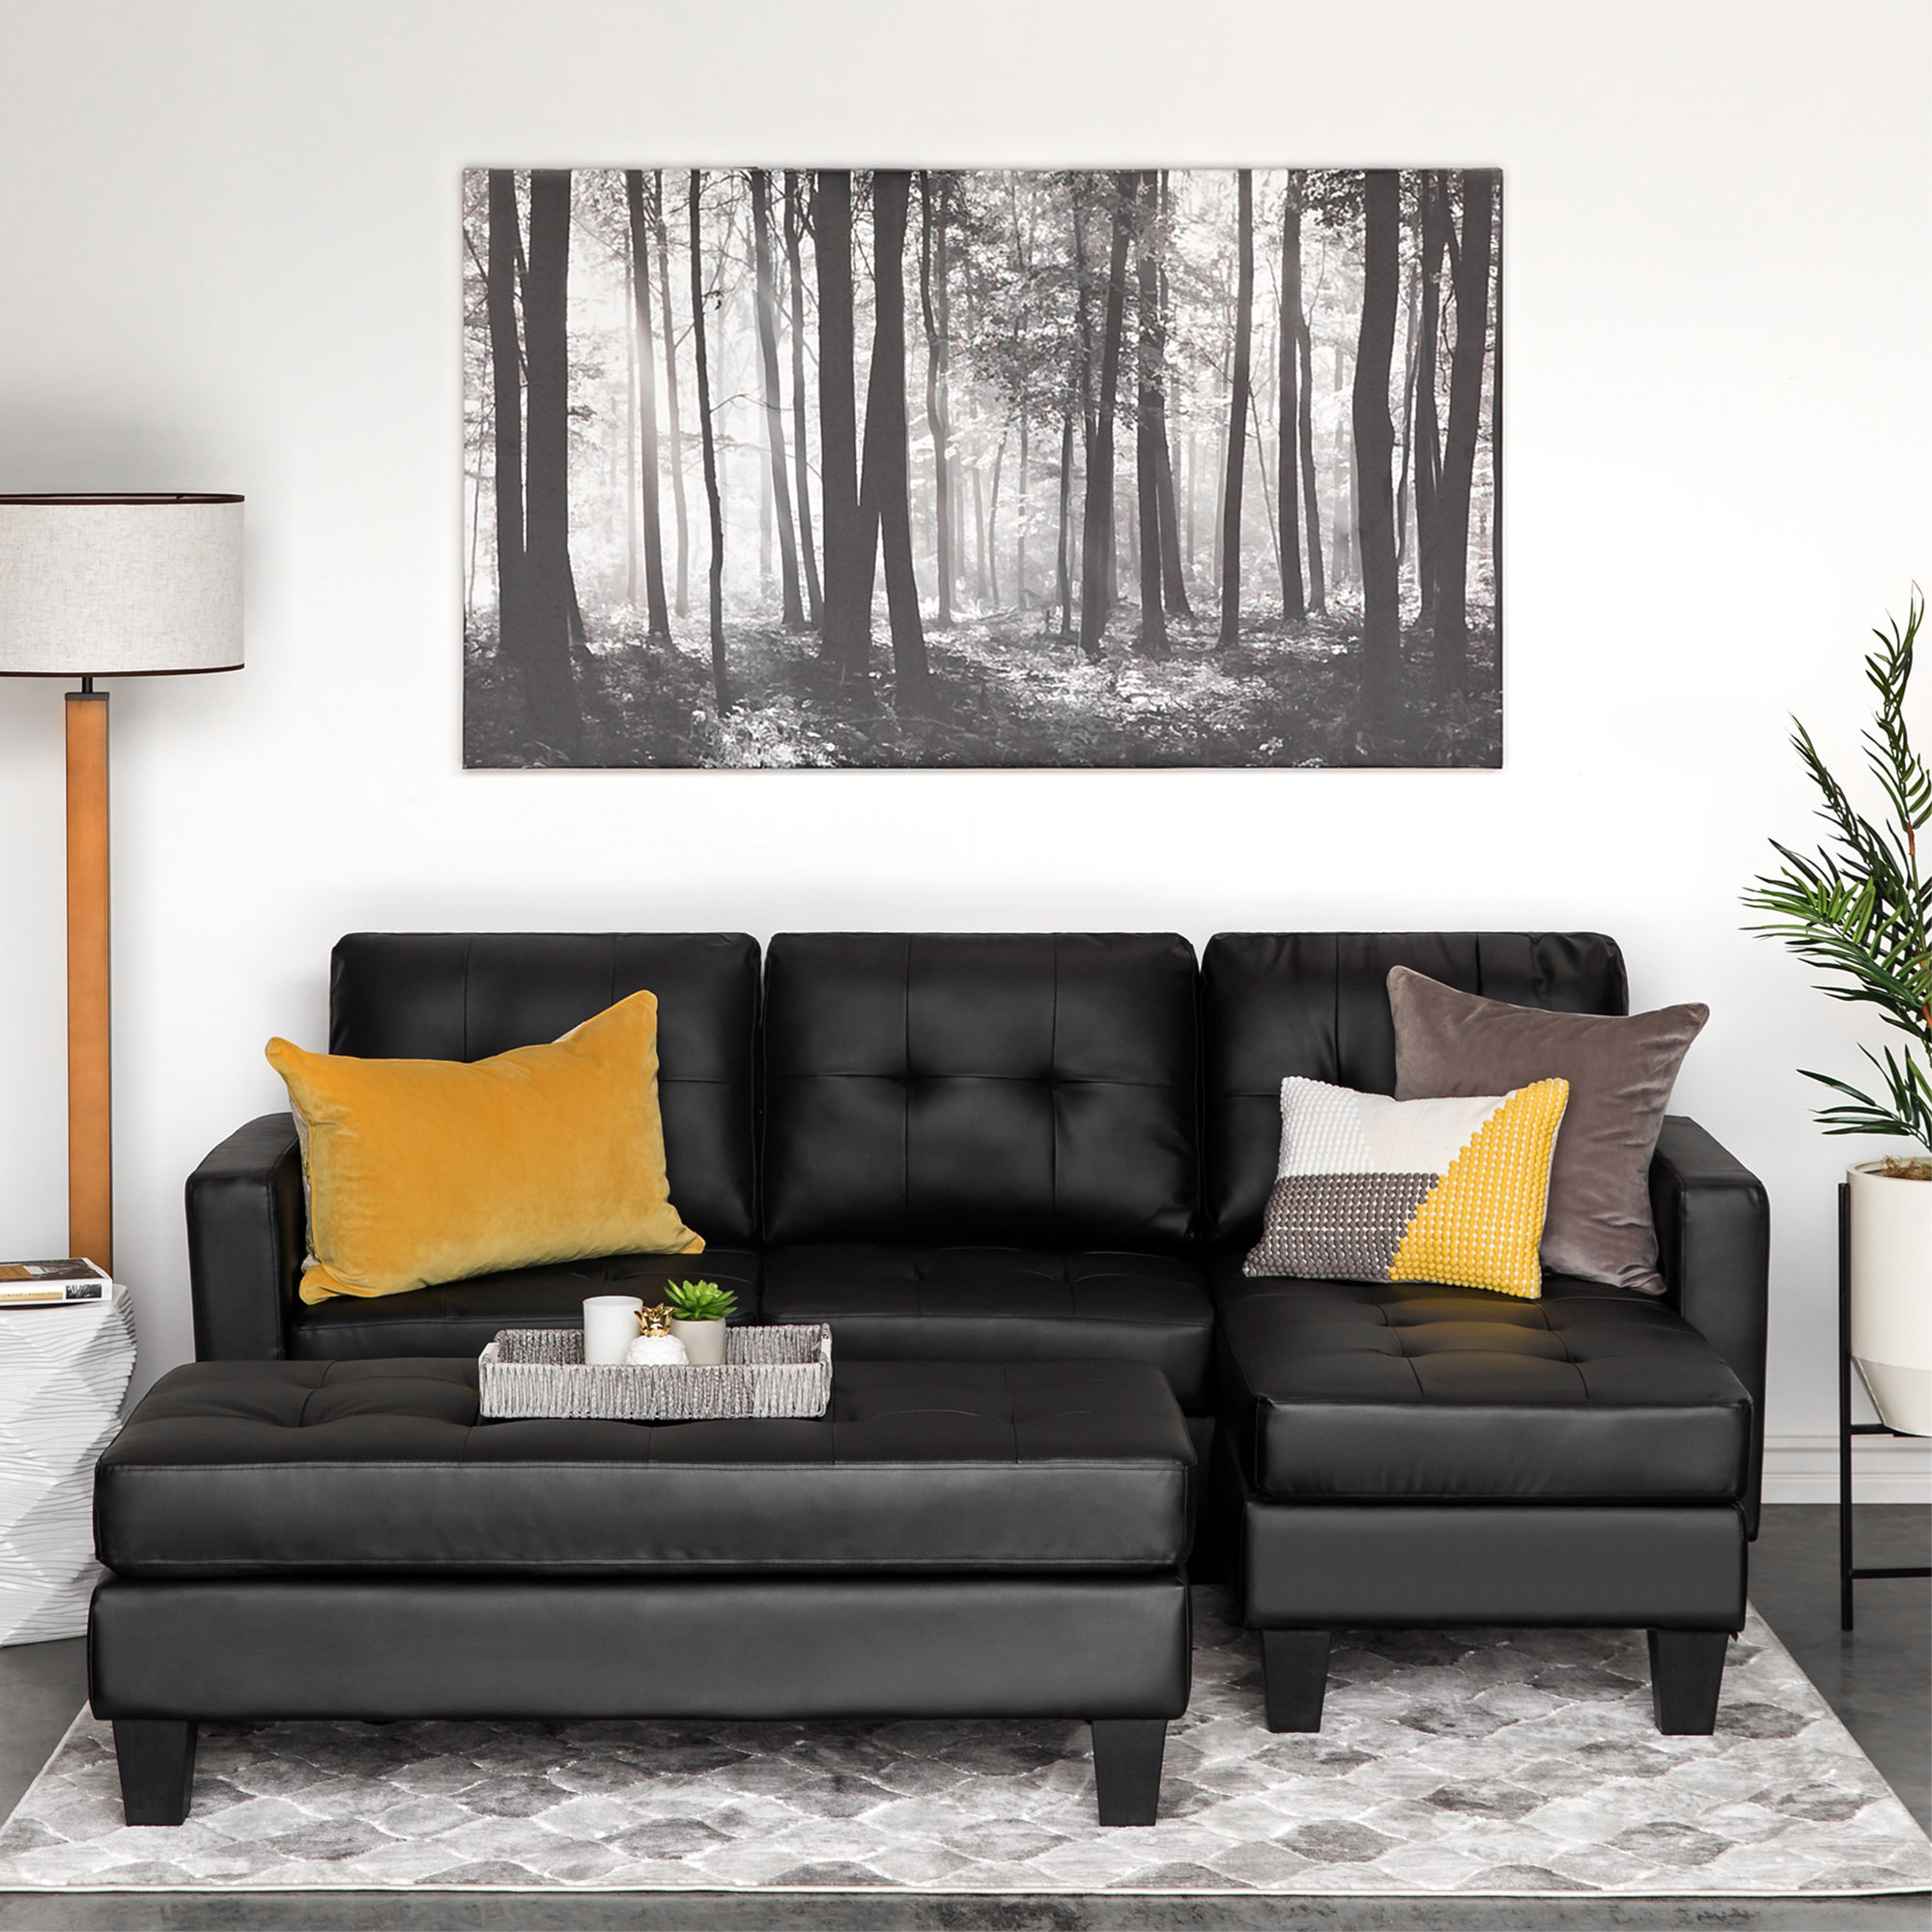 Swell Details About Leather Small Space Black Sectional Sofa Couch Set 3 Seater W Chaise Ottoman Alphanode Cool Chair Designs And Ideas Alphanodeonline